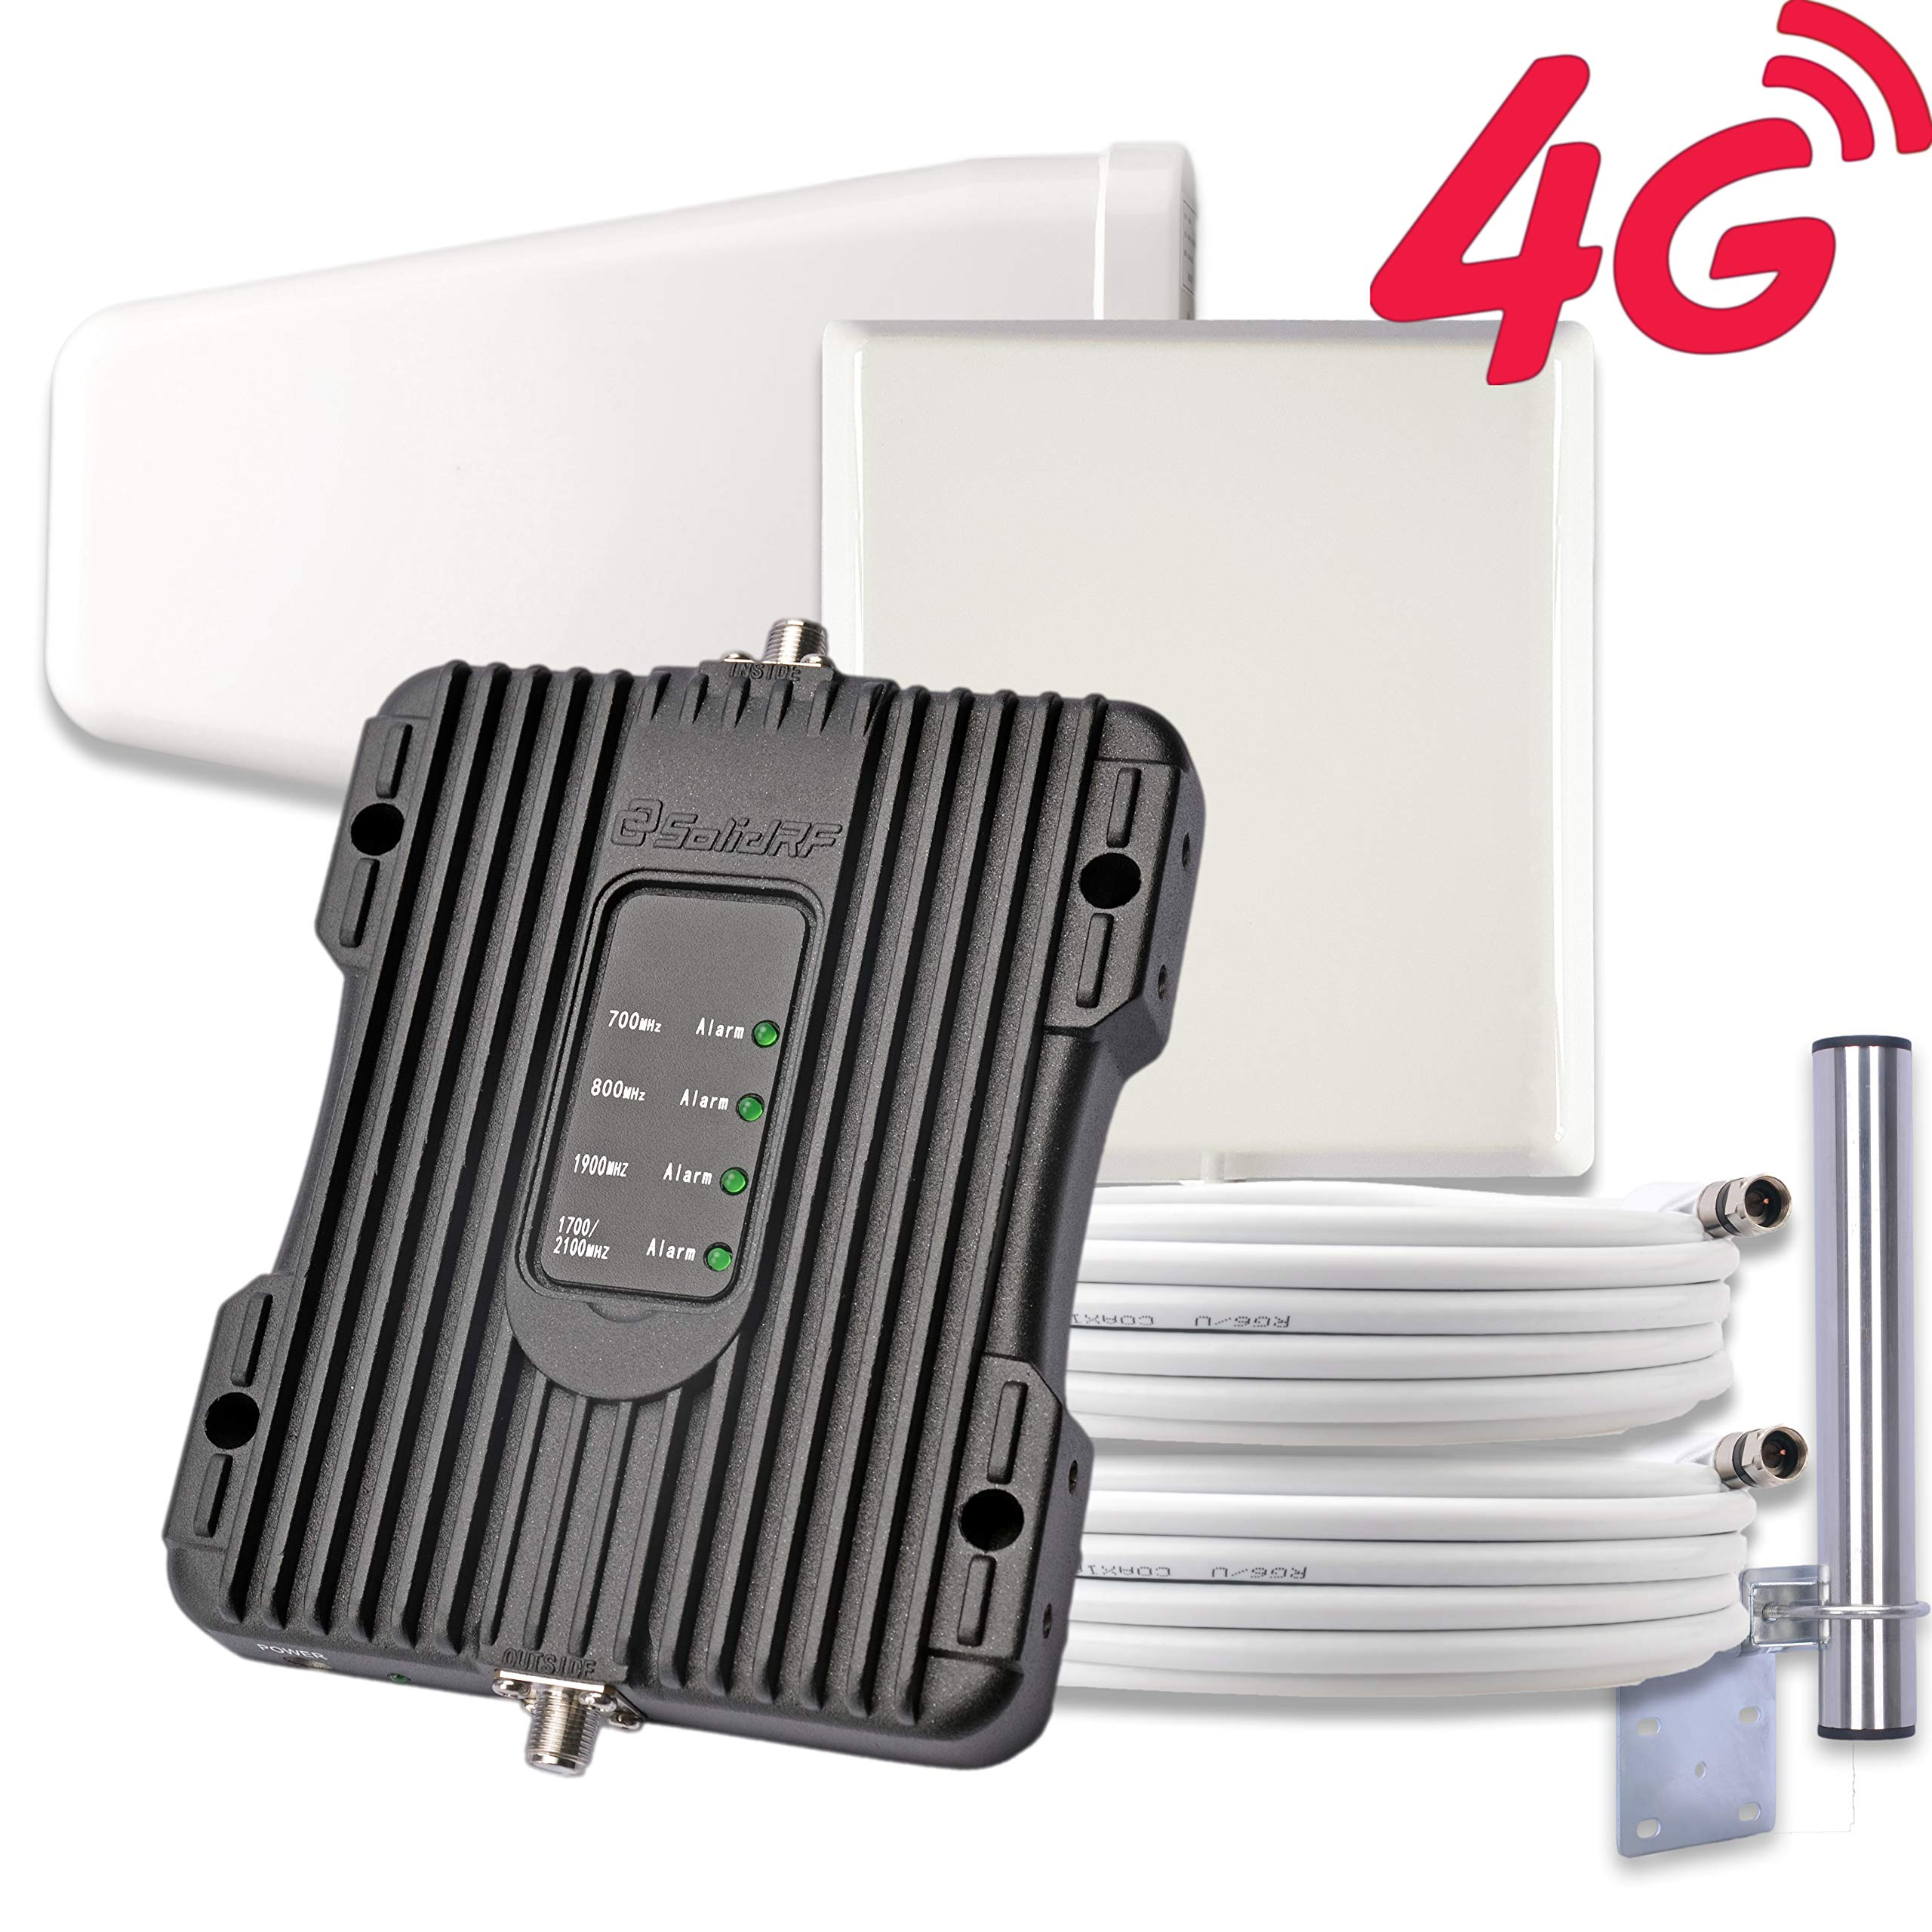 Best Rated In Cell Phone Signal Boosters Helpful Customer Reviews Inside A Solidrf Buildingforce 4g K1 Booster 3g Lte Mobile